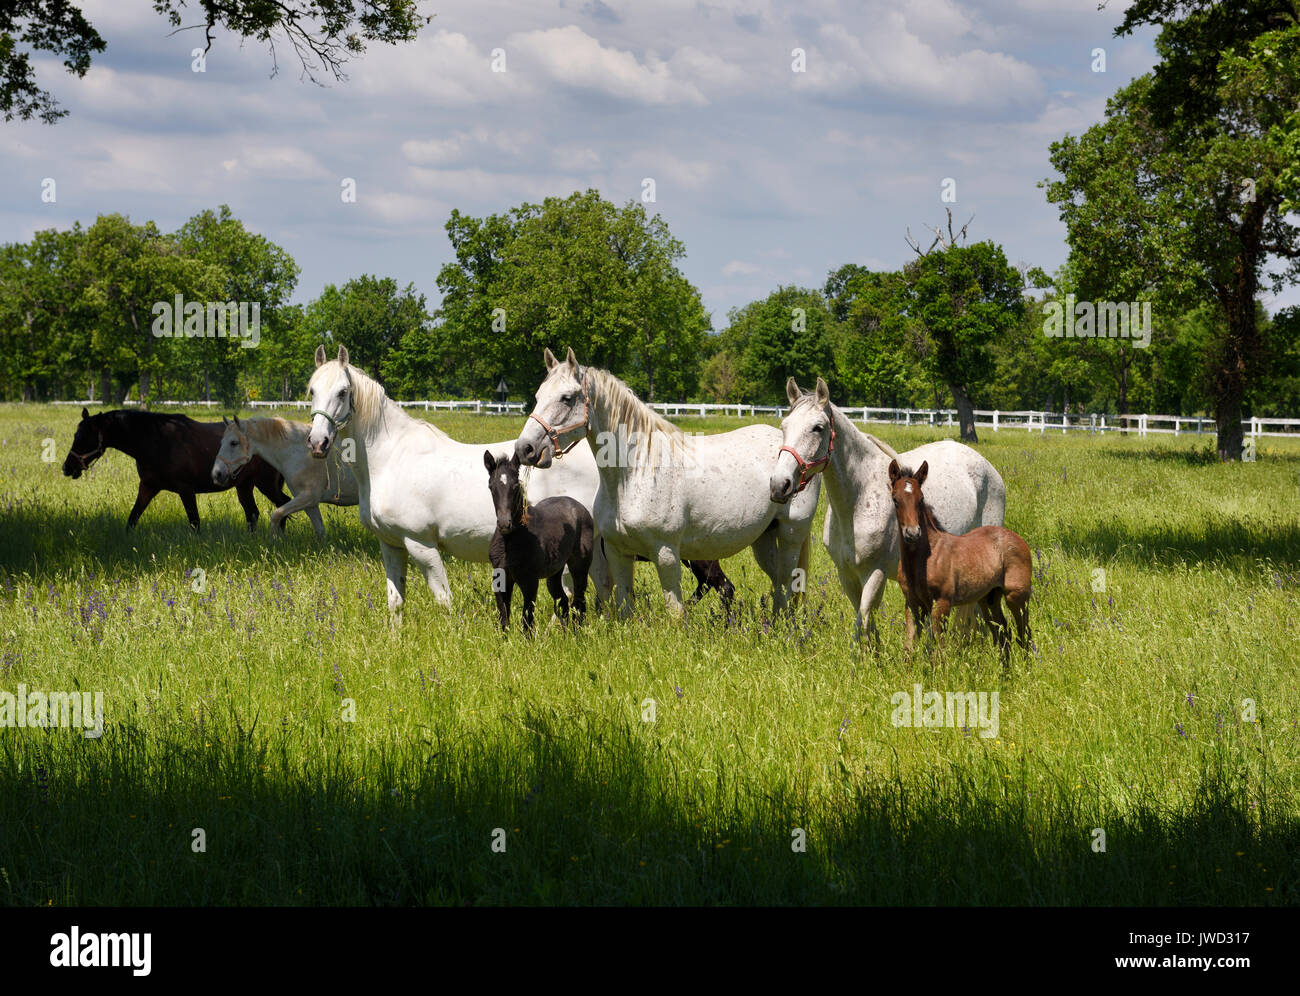 White Lipizzaner mares horse breed with dark foals grazing in a meadow with grass and flowers at the Lipica Stud Stock Photo